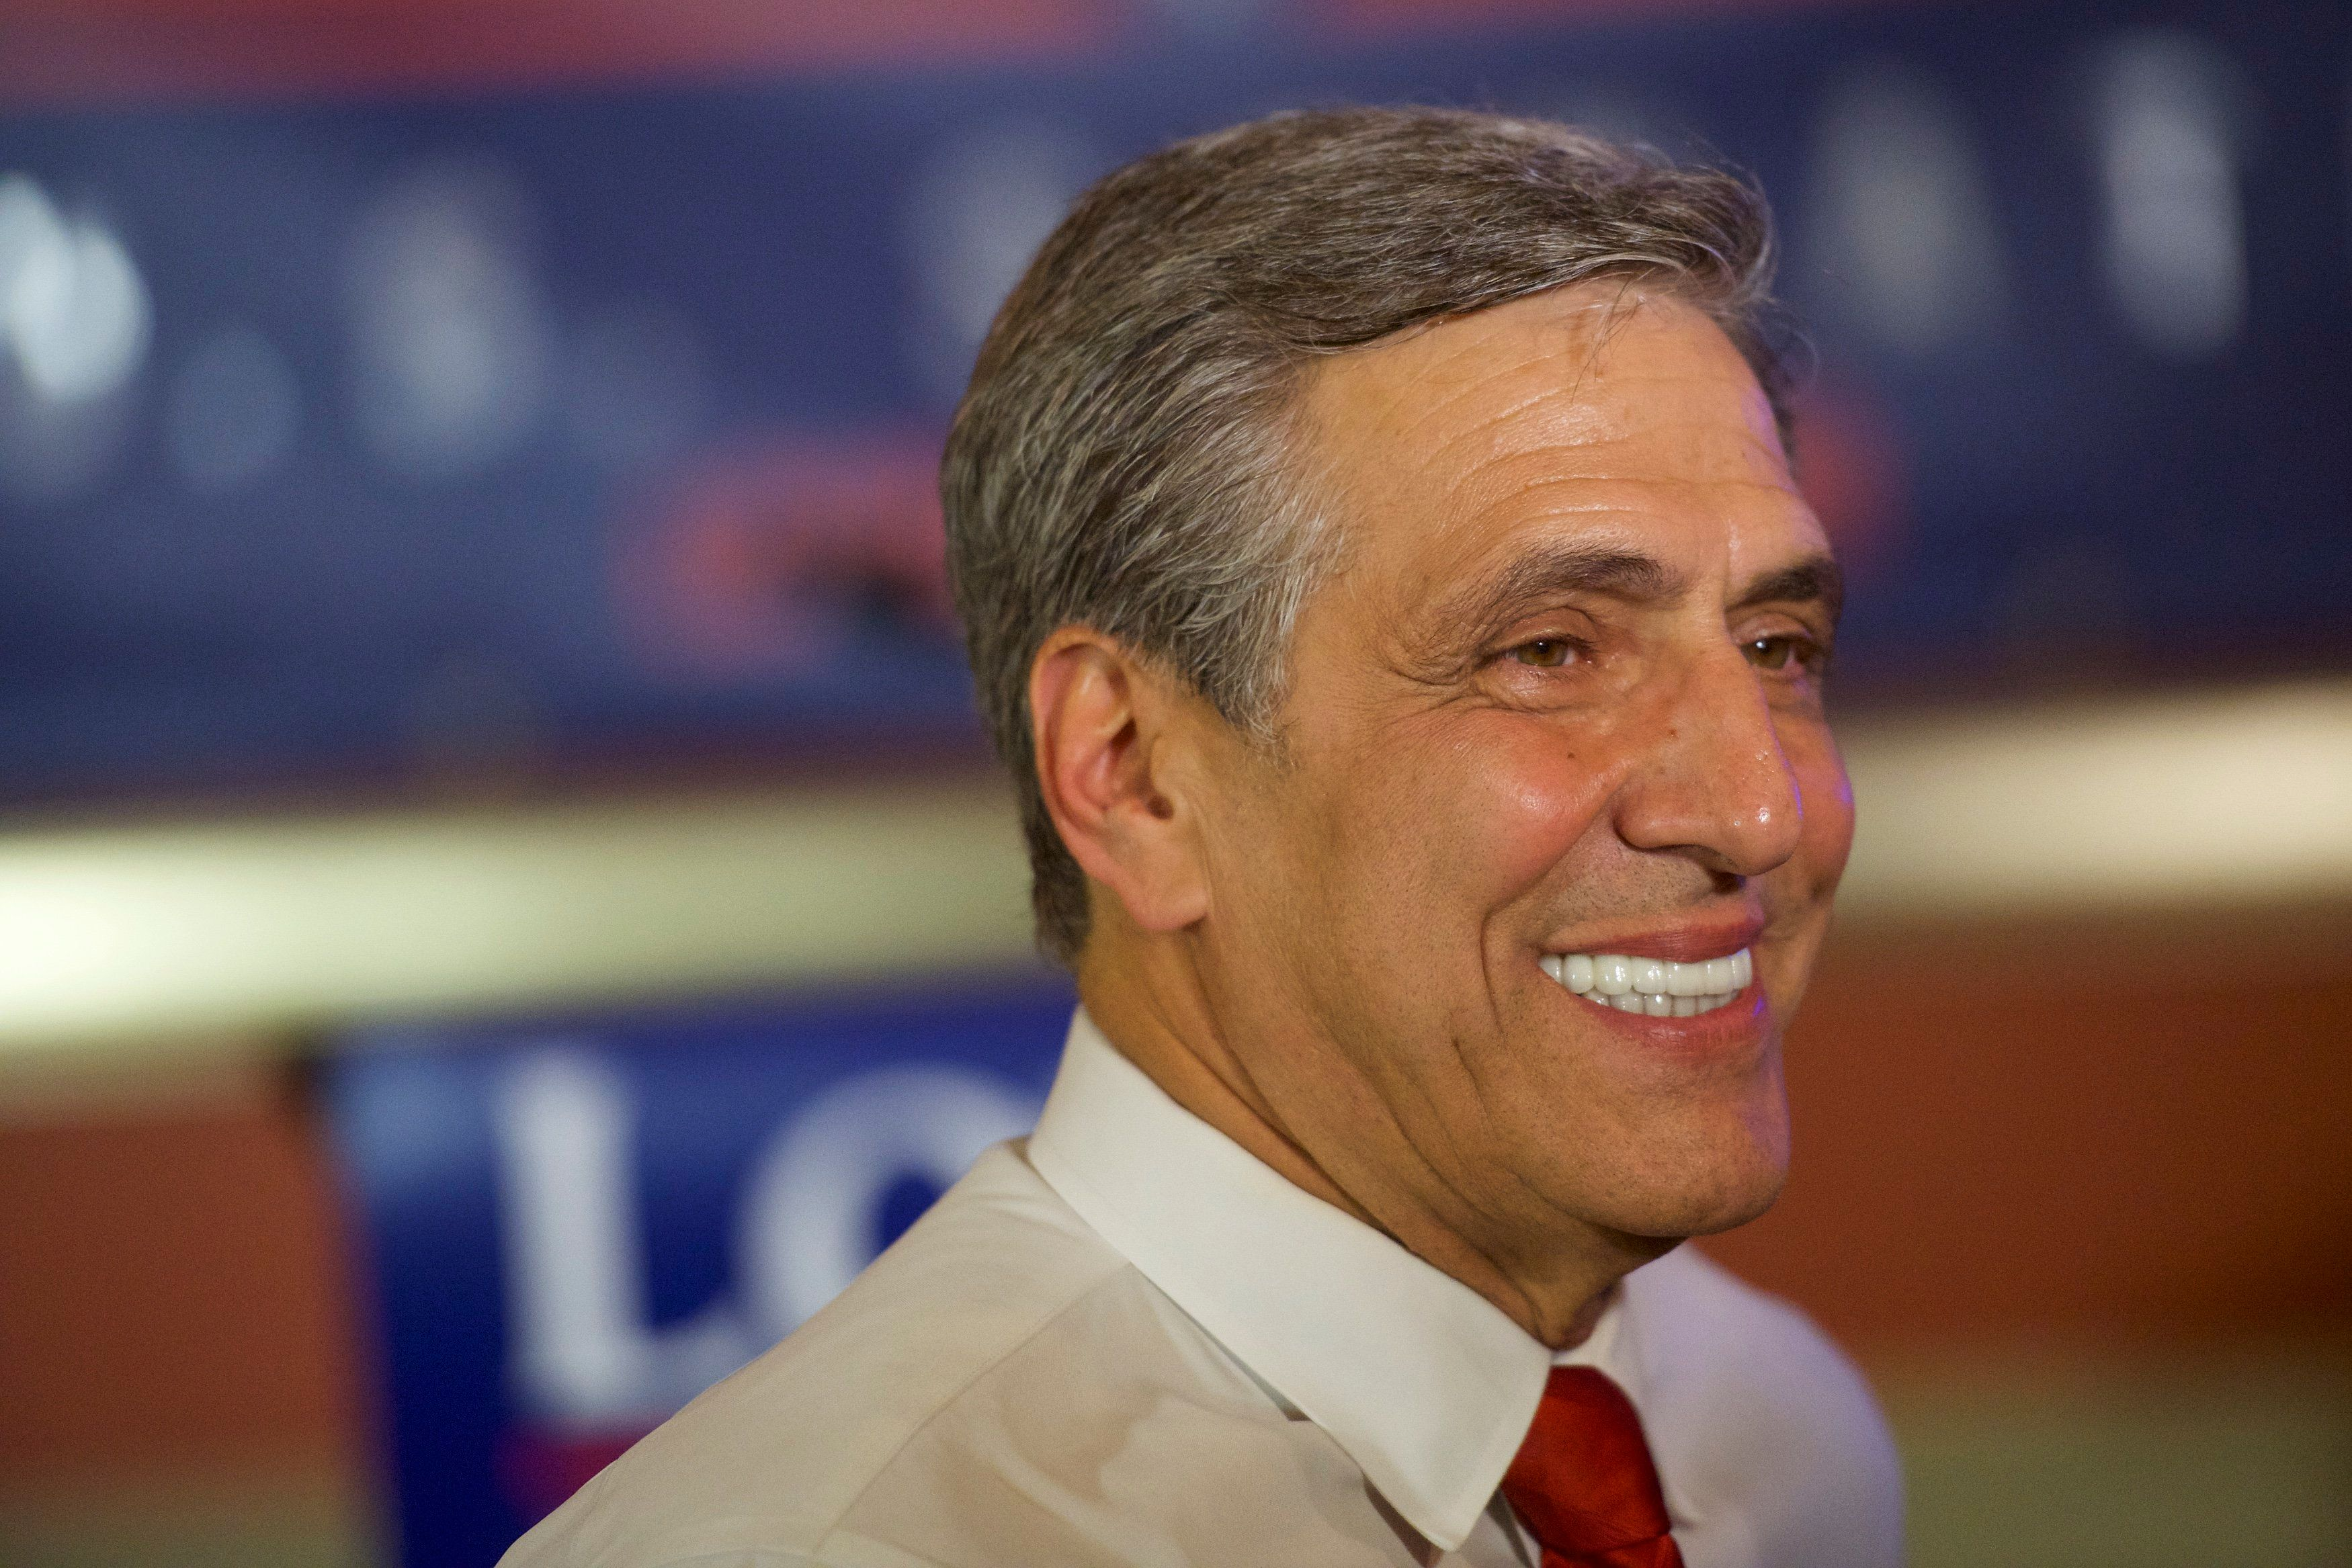 HAZLETON, PA - MAY 15:  U.S. Congressman Lou Barletta (R - Pa.) gives an interview with the media after his victory in the 2018 Pennsylvania Primary Election for U.S. Senator on May 15, 2018 in Hazleton, Pennsylvania.  In the second major May primary day nationwide, four states go to the polls: Idaho, Nebraska, Oregon, and Pennsylvania.  (Photo by Mark Makela/Getty Images)